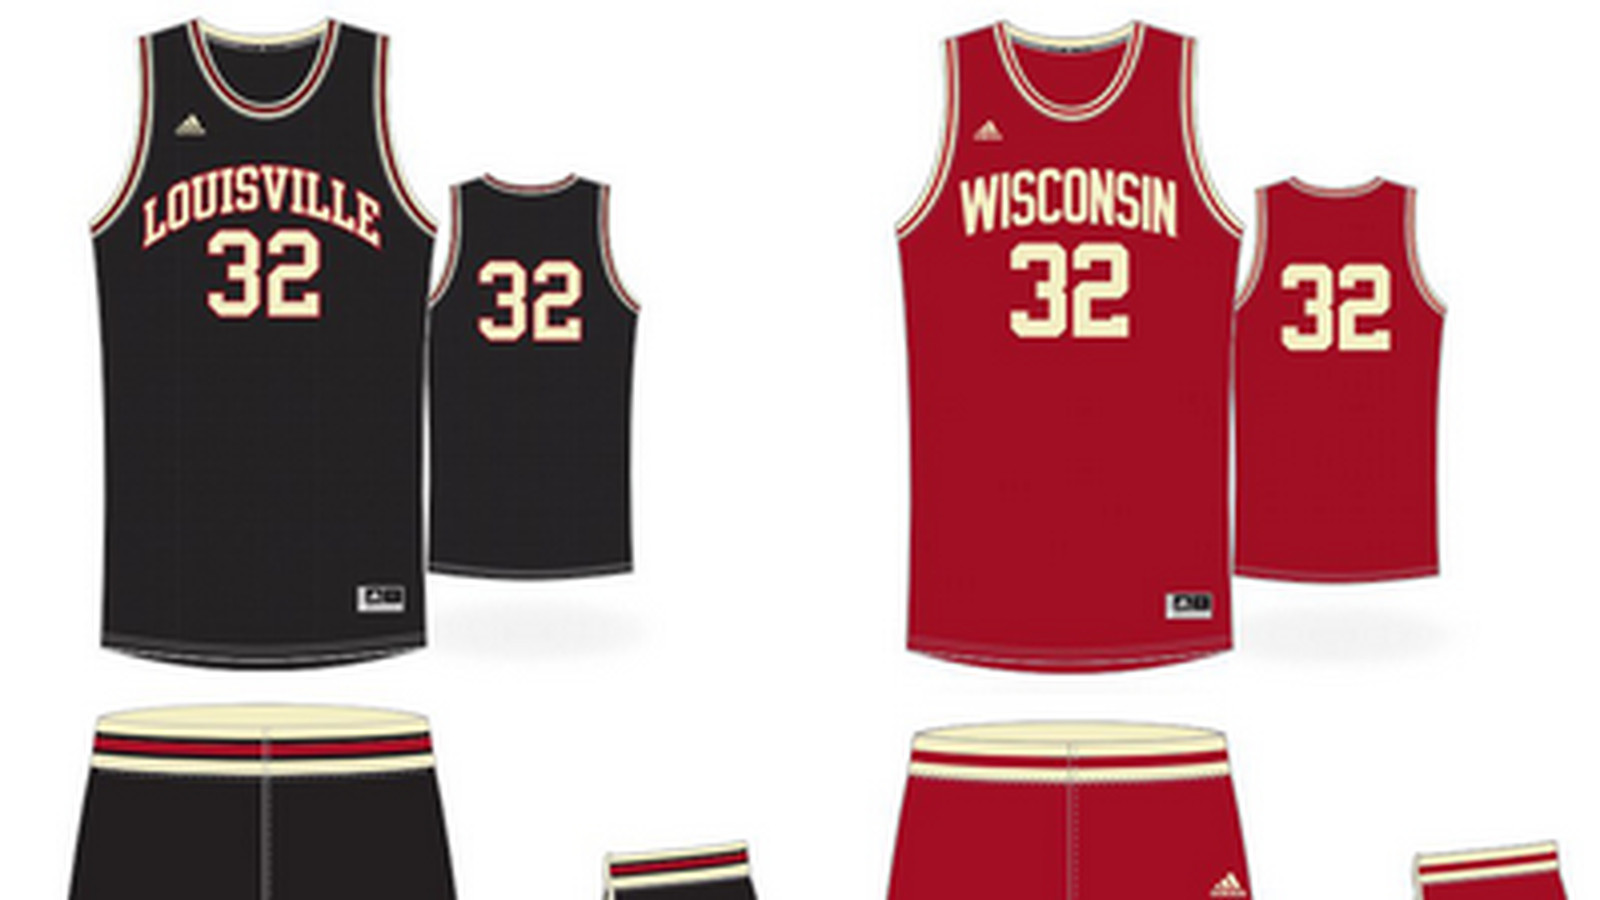 timeless design 49363 a2a5c LEAK  Wisconsin s new alternate basketball uniforms for 2015-16 are sick -  Bucky s 5th Quarter